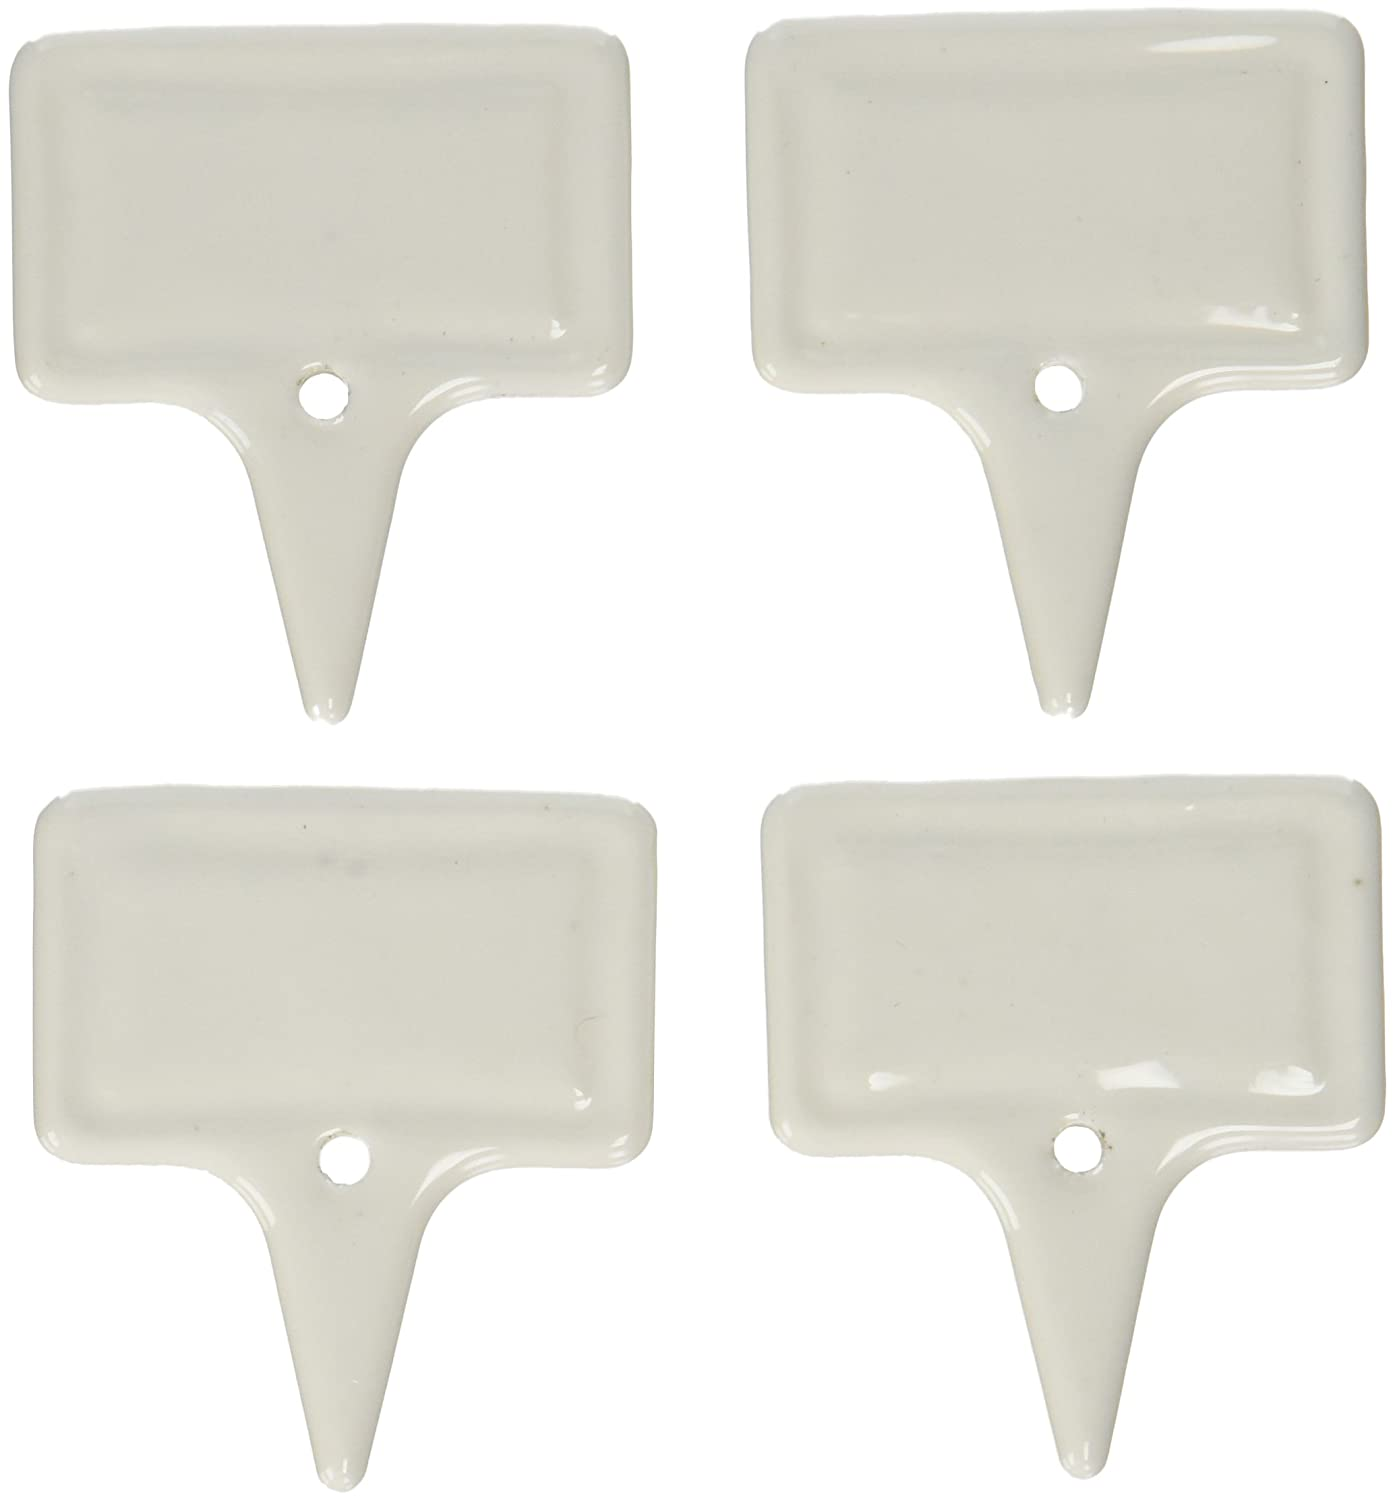 Twine 2409 1.9-Inch Country Cottage Ceramic Cheese Markers, White